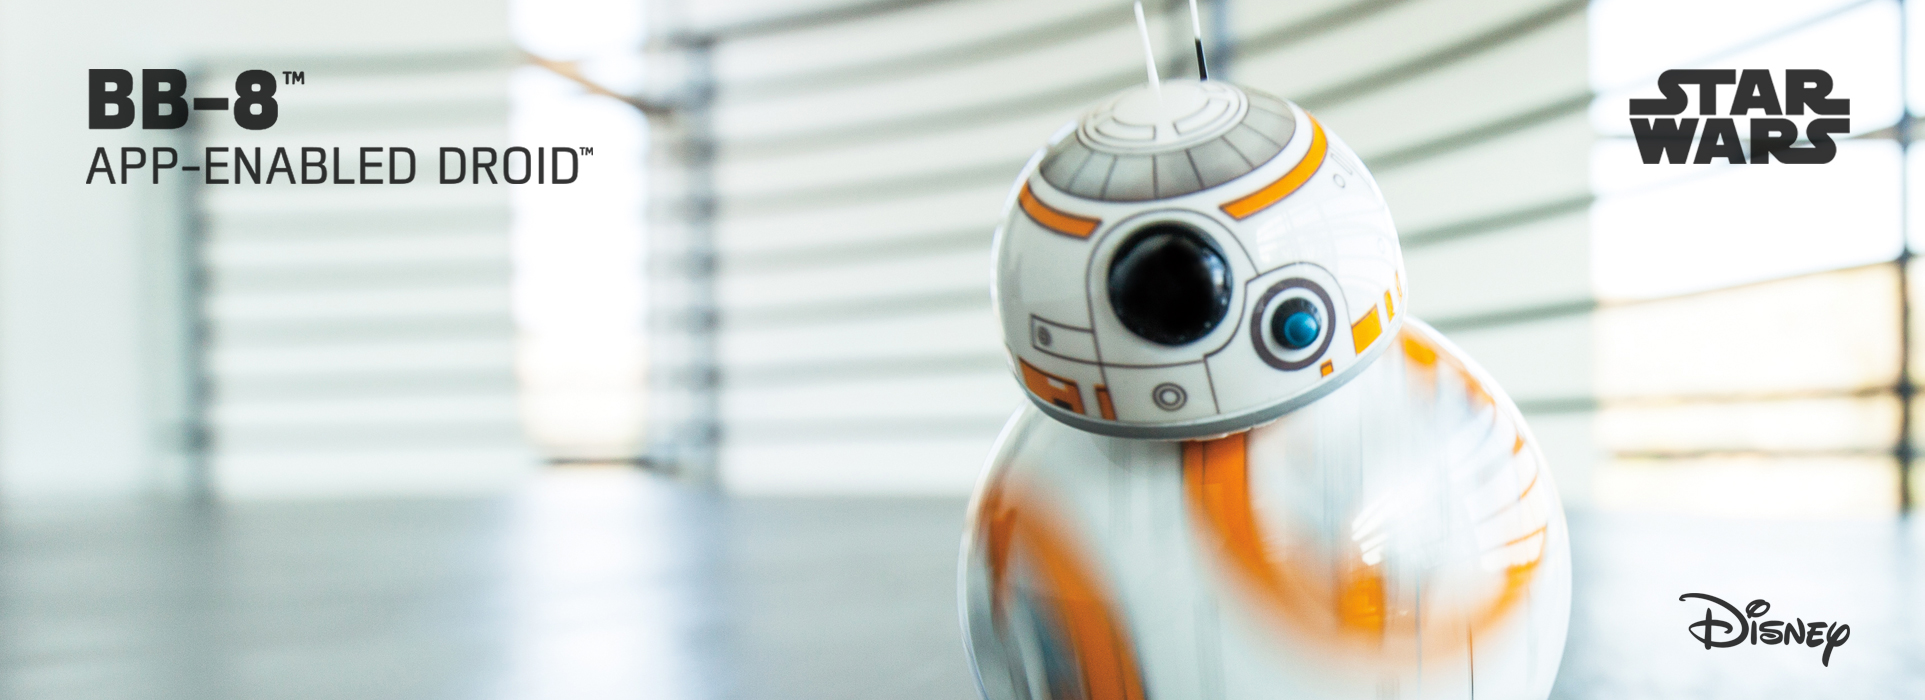 BB-8™ APP-ENABLED DROID